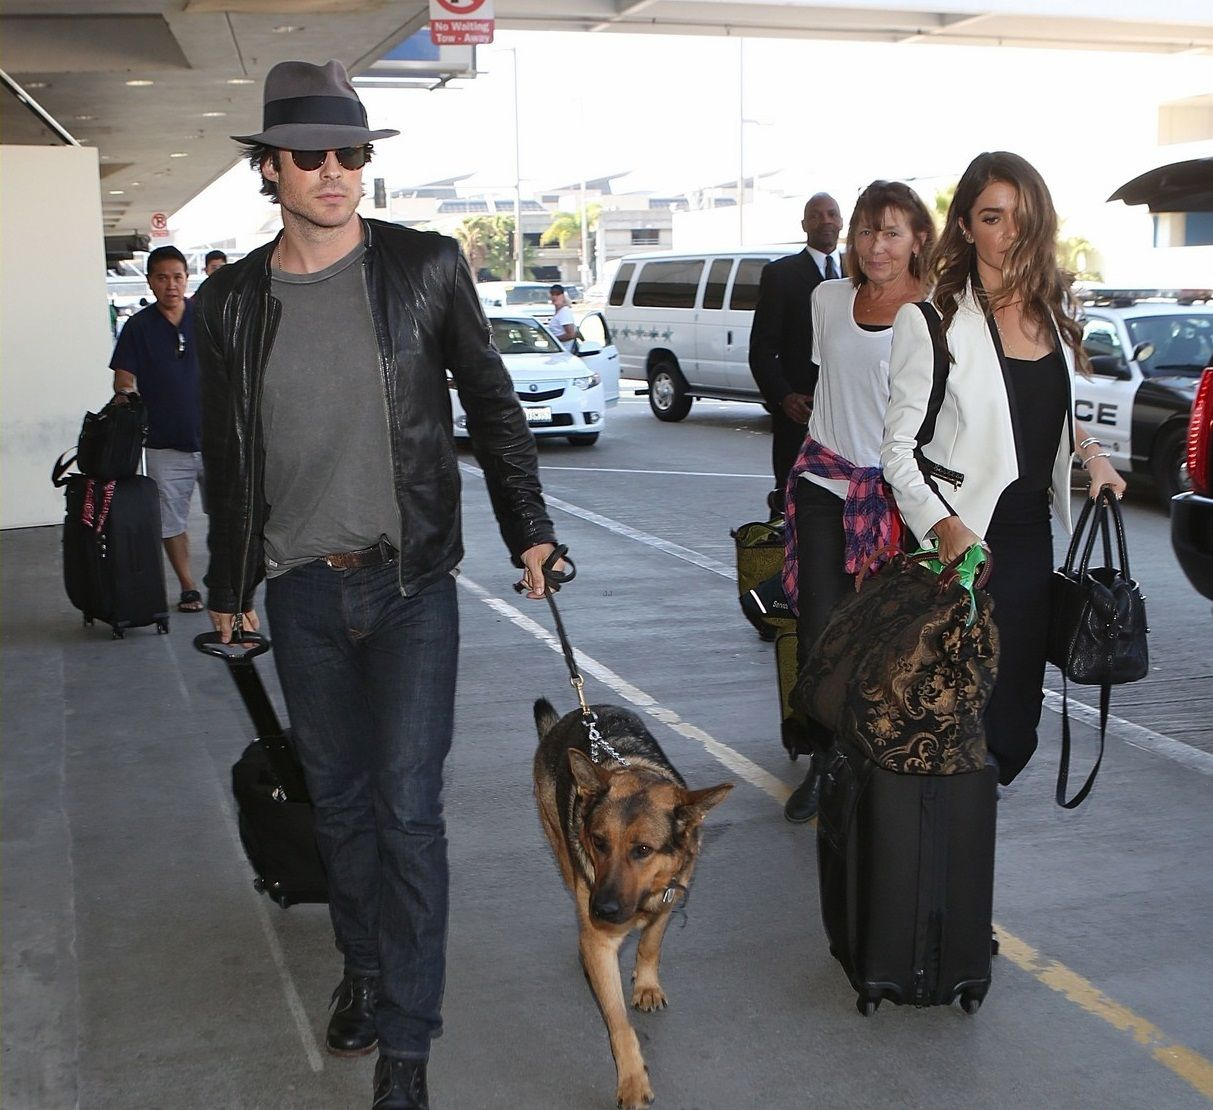 Ian Somerhalder and Nikki Reed check in for their Delta flight together on Friday afternoon (October 10) at LAX Airport in Los Angeles.